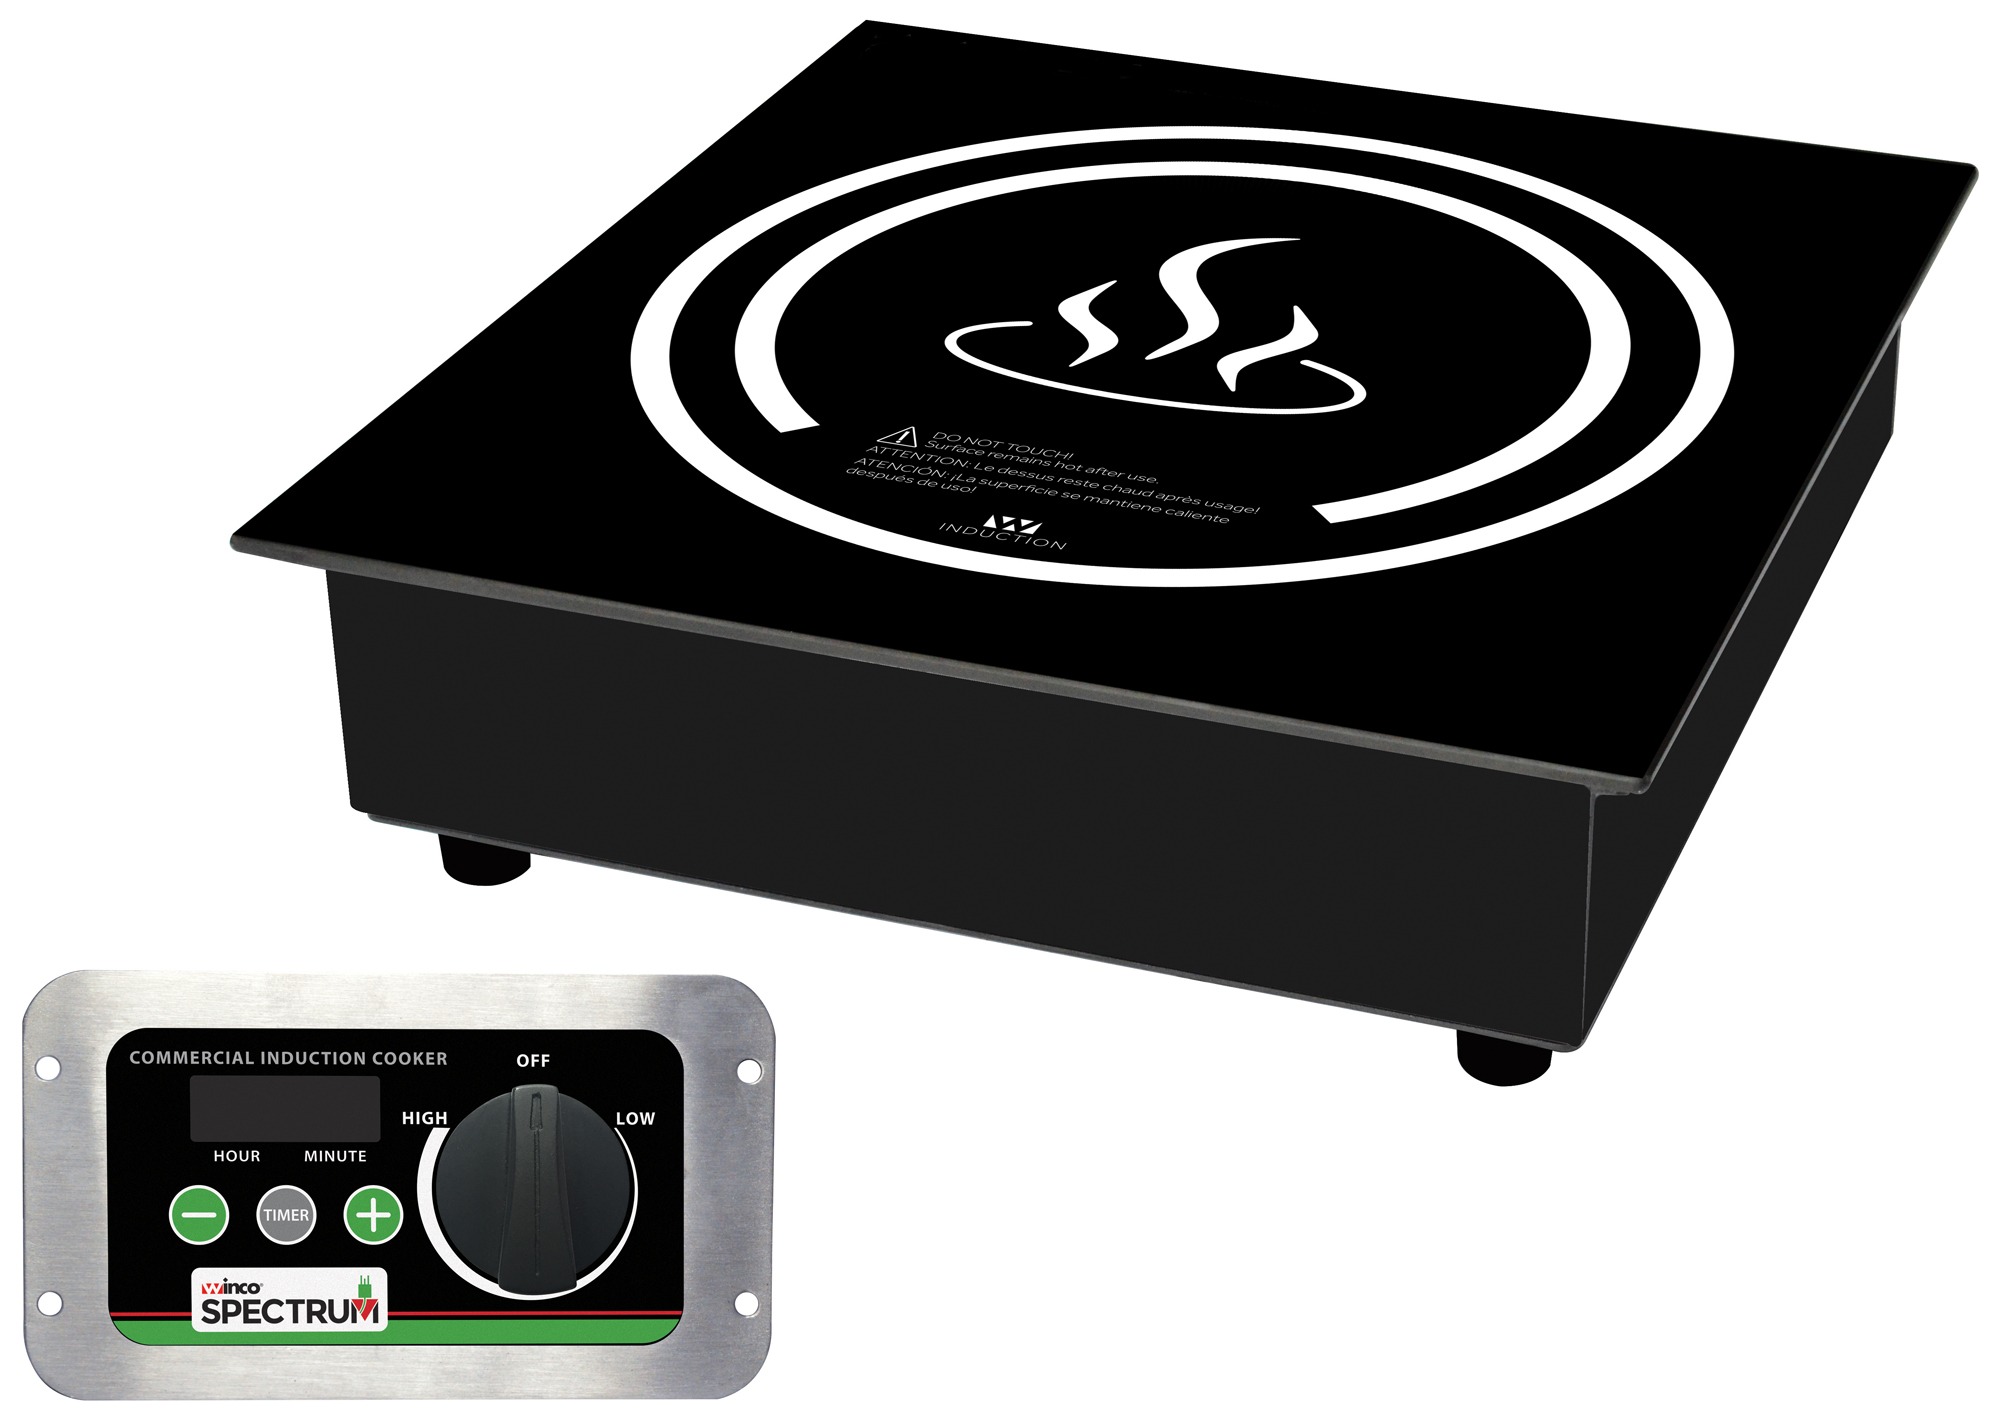 Winco EIDS-34 commercial drop-in induction cooker